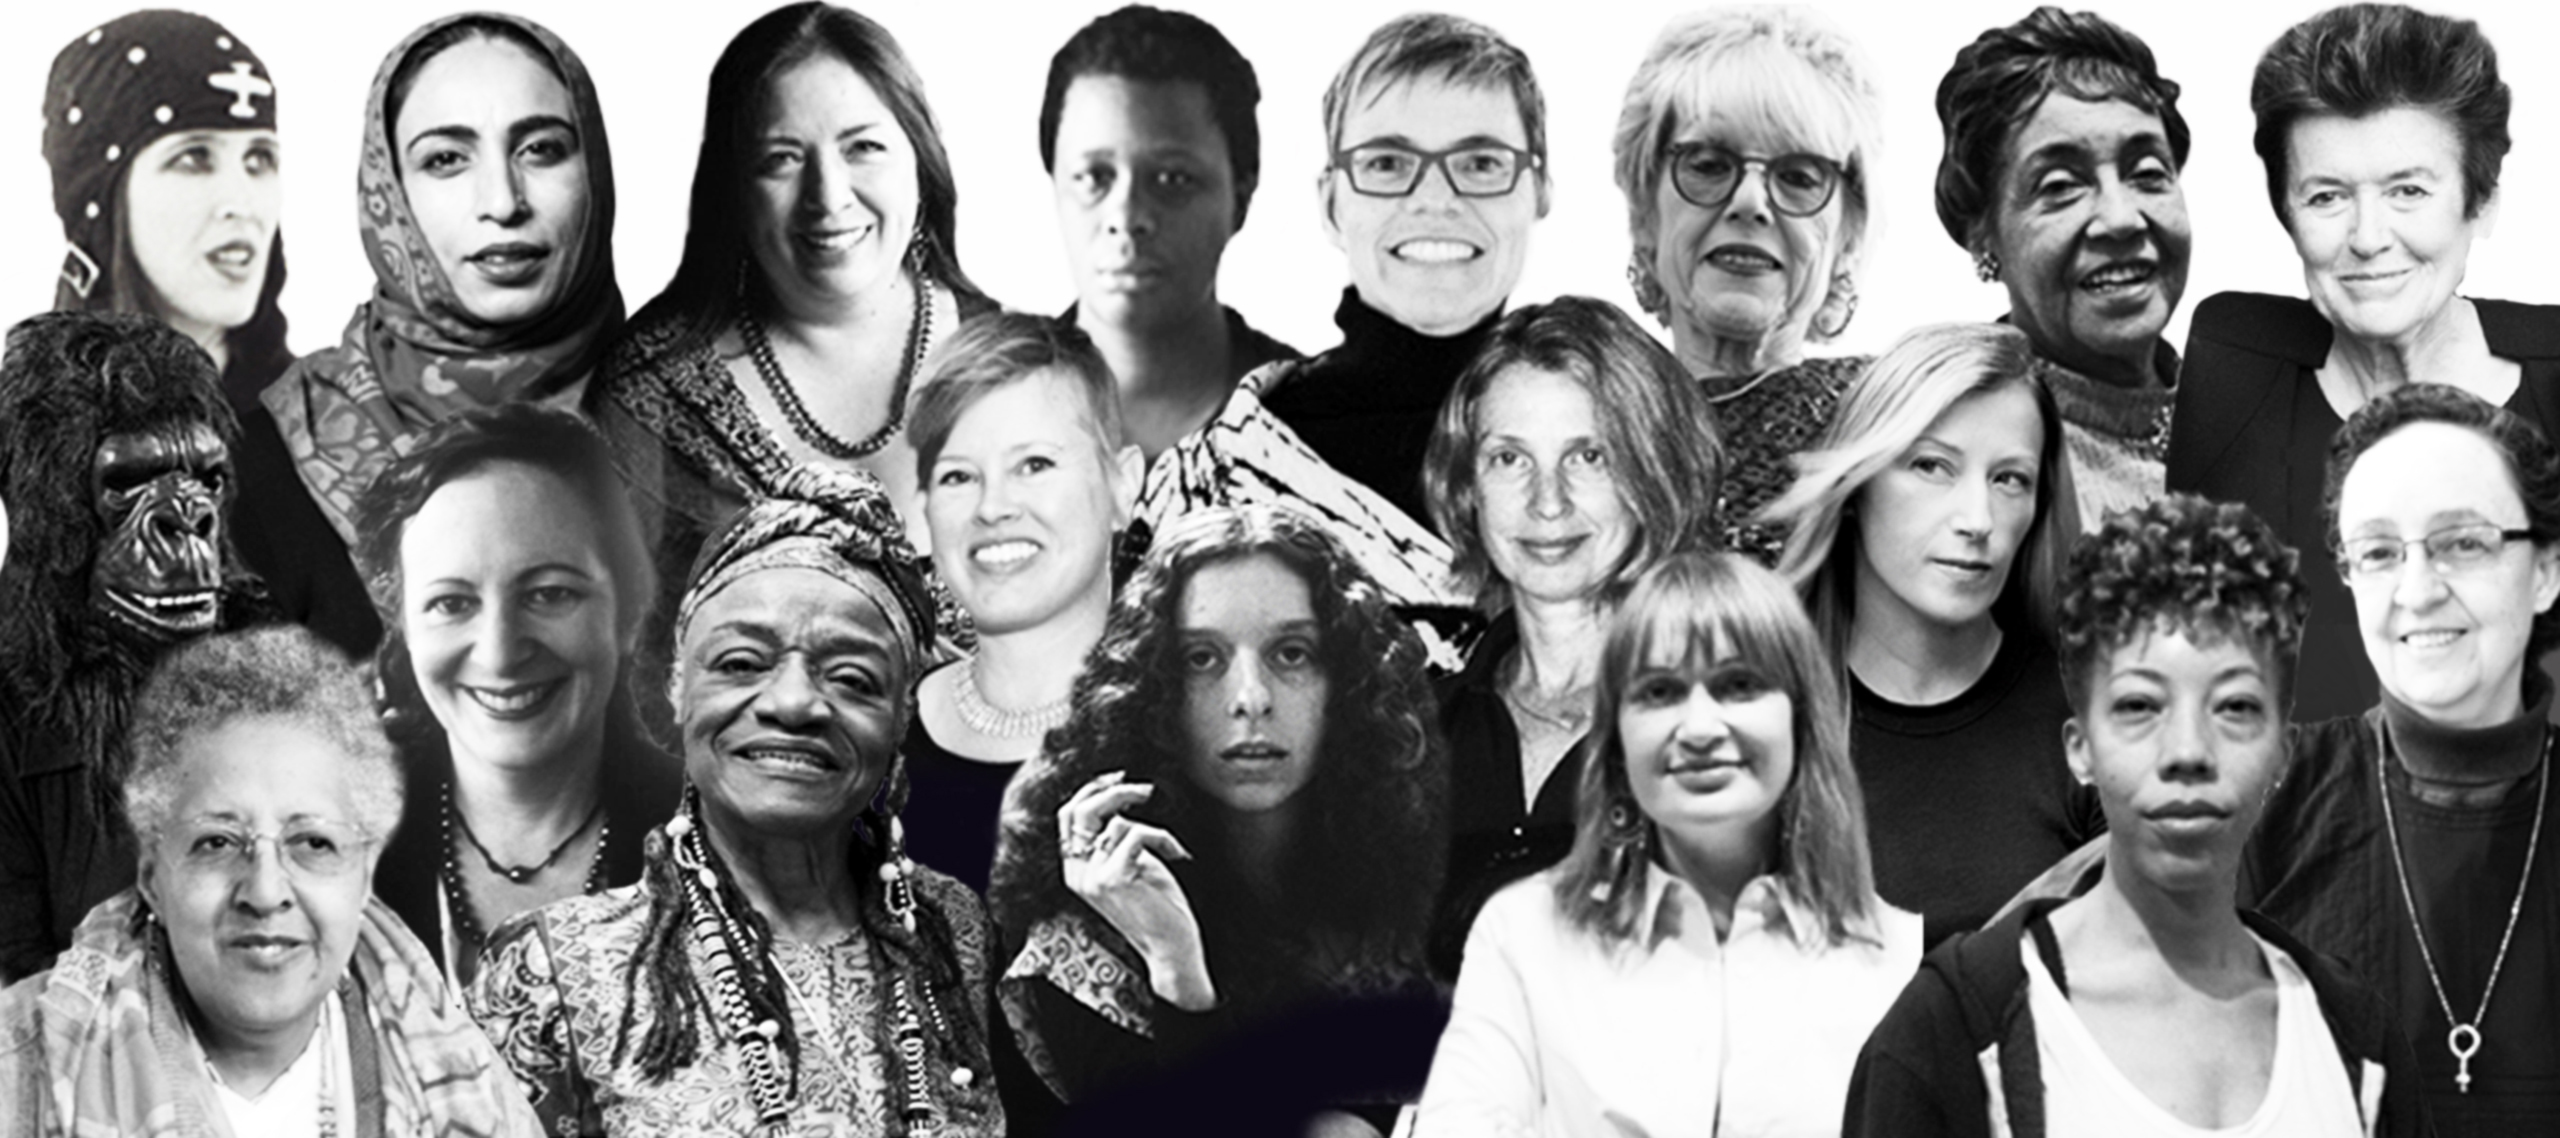 Black and white photo collage of around twenty different women artists shown from the shoulders up.